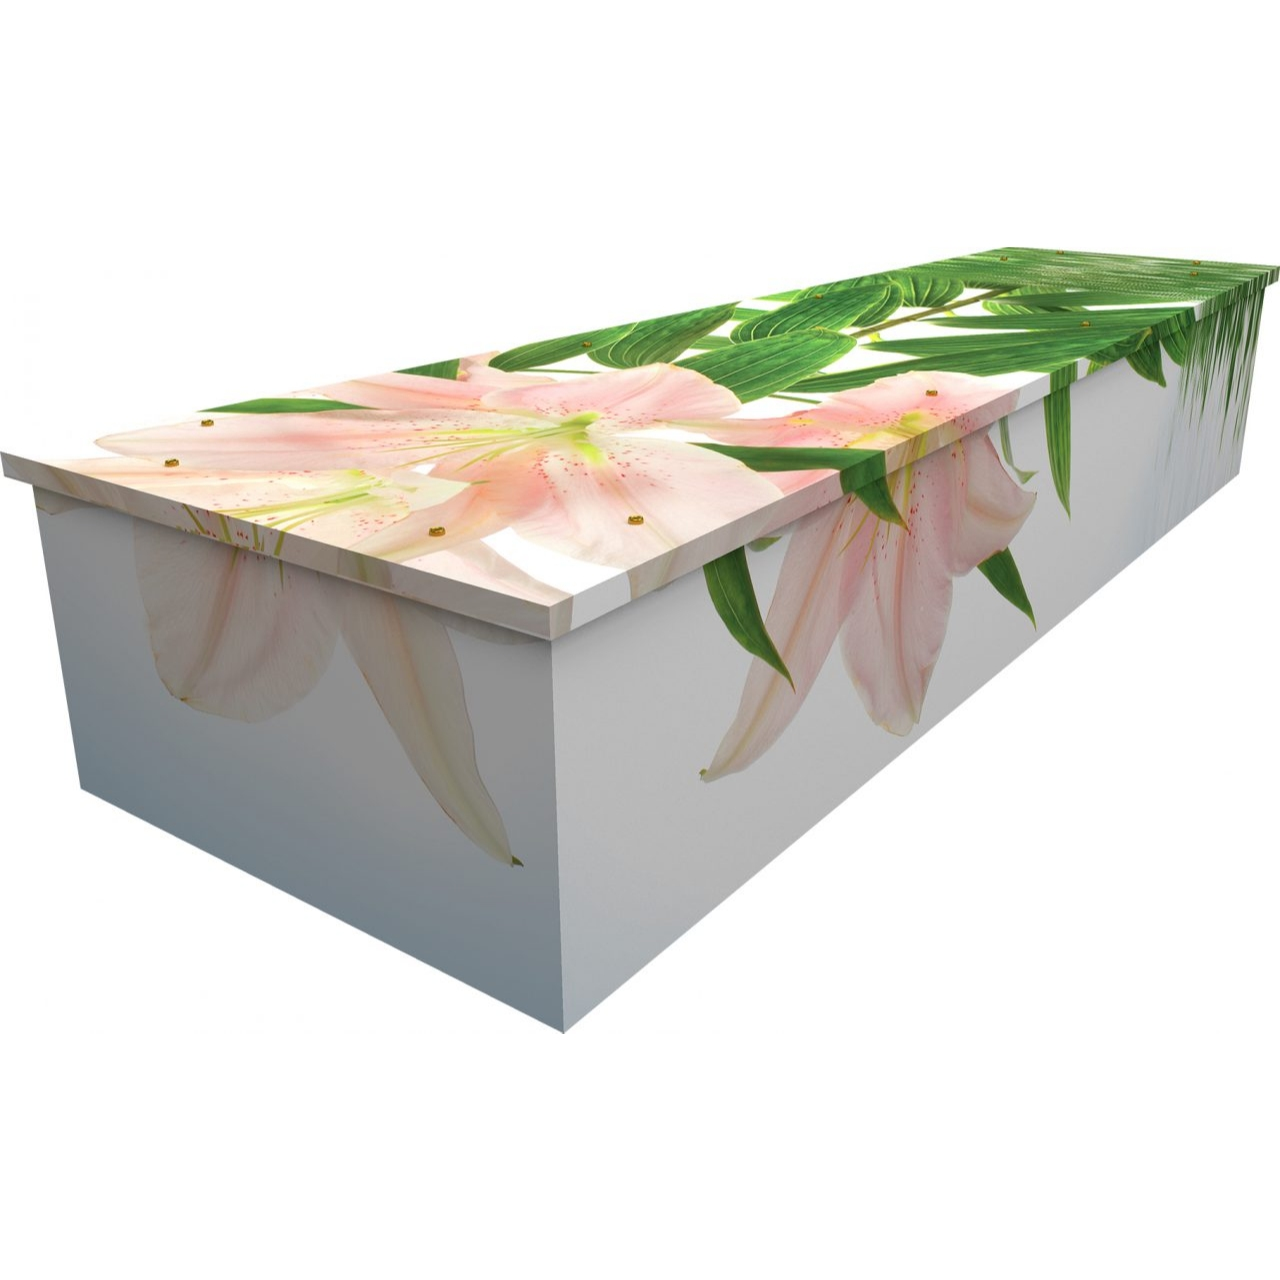 Lily Cardboard Coffin